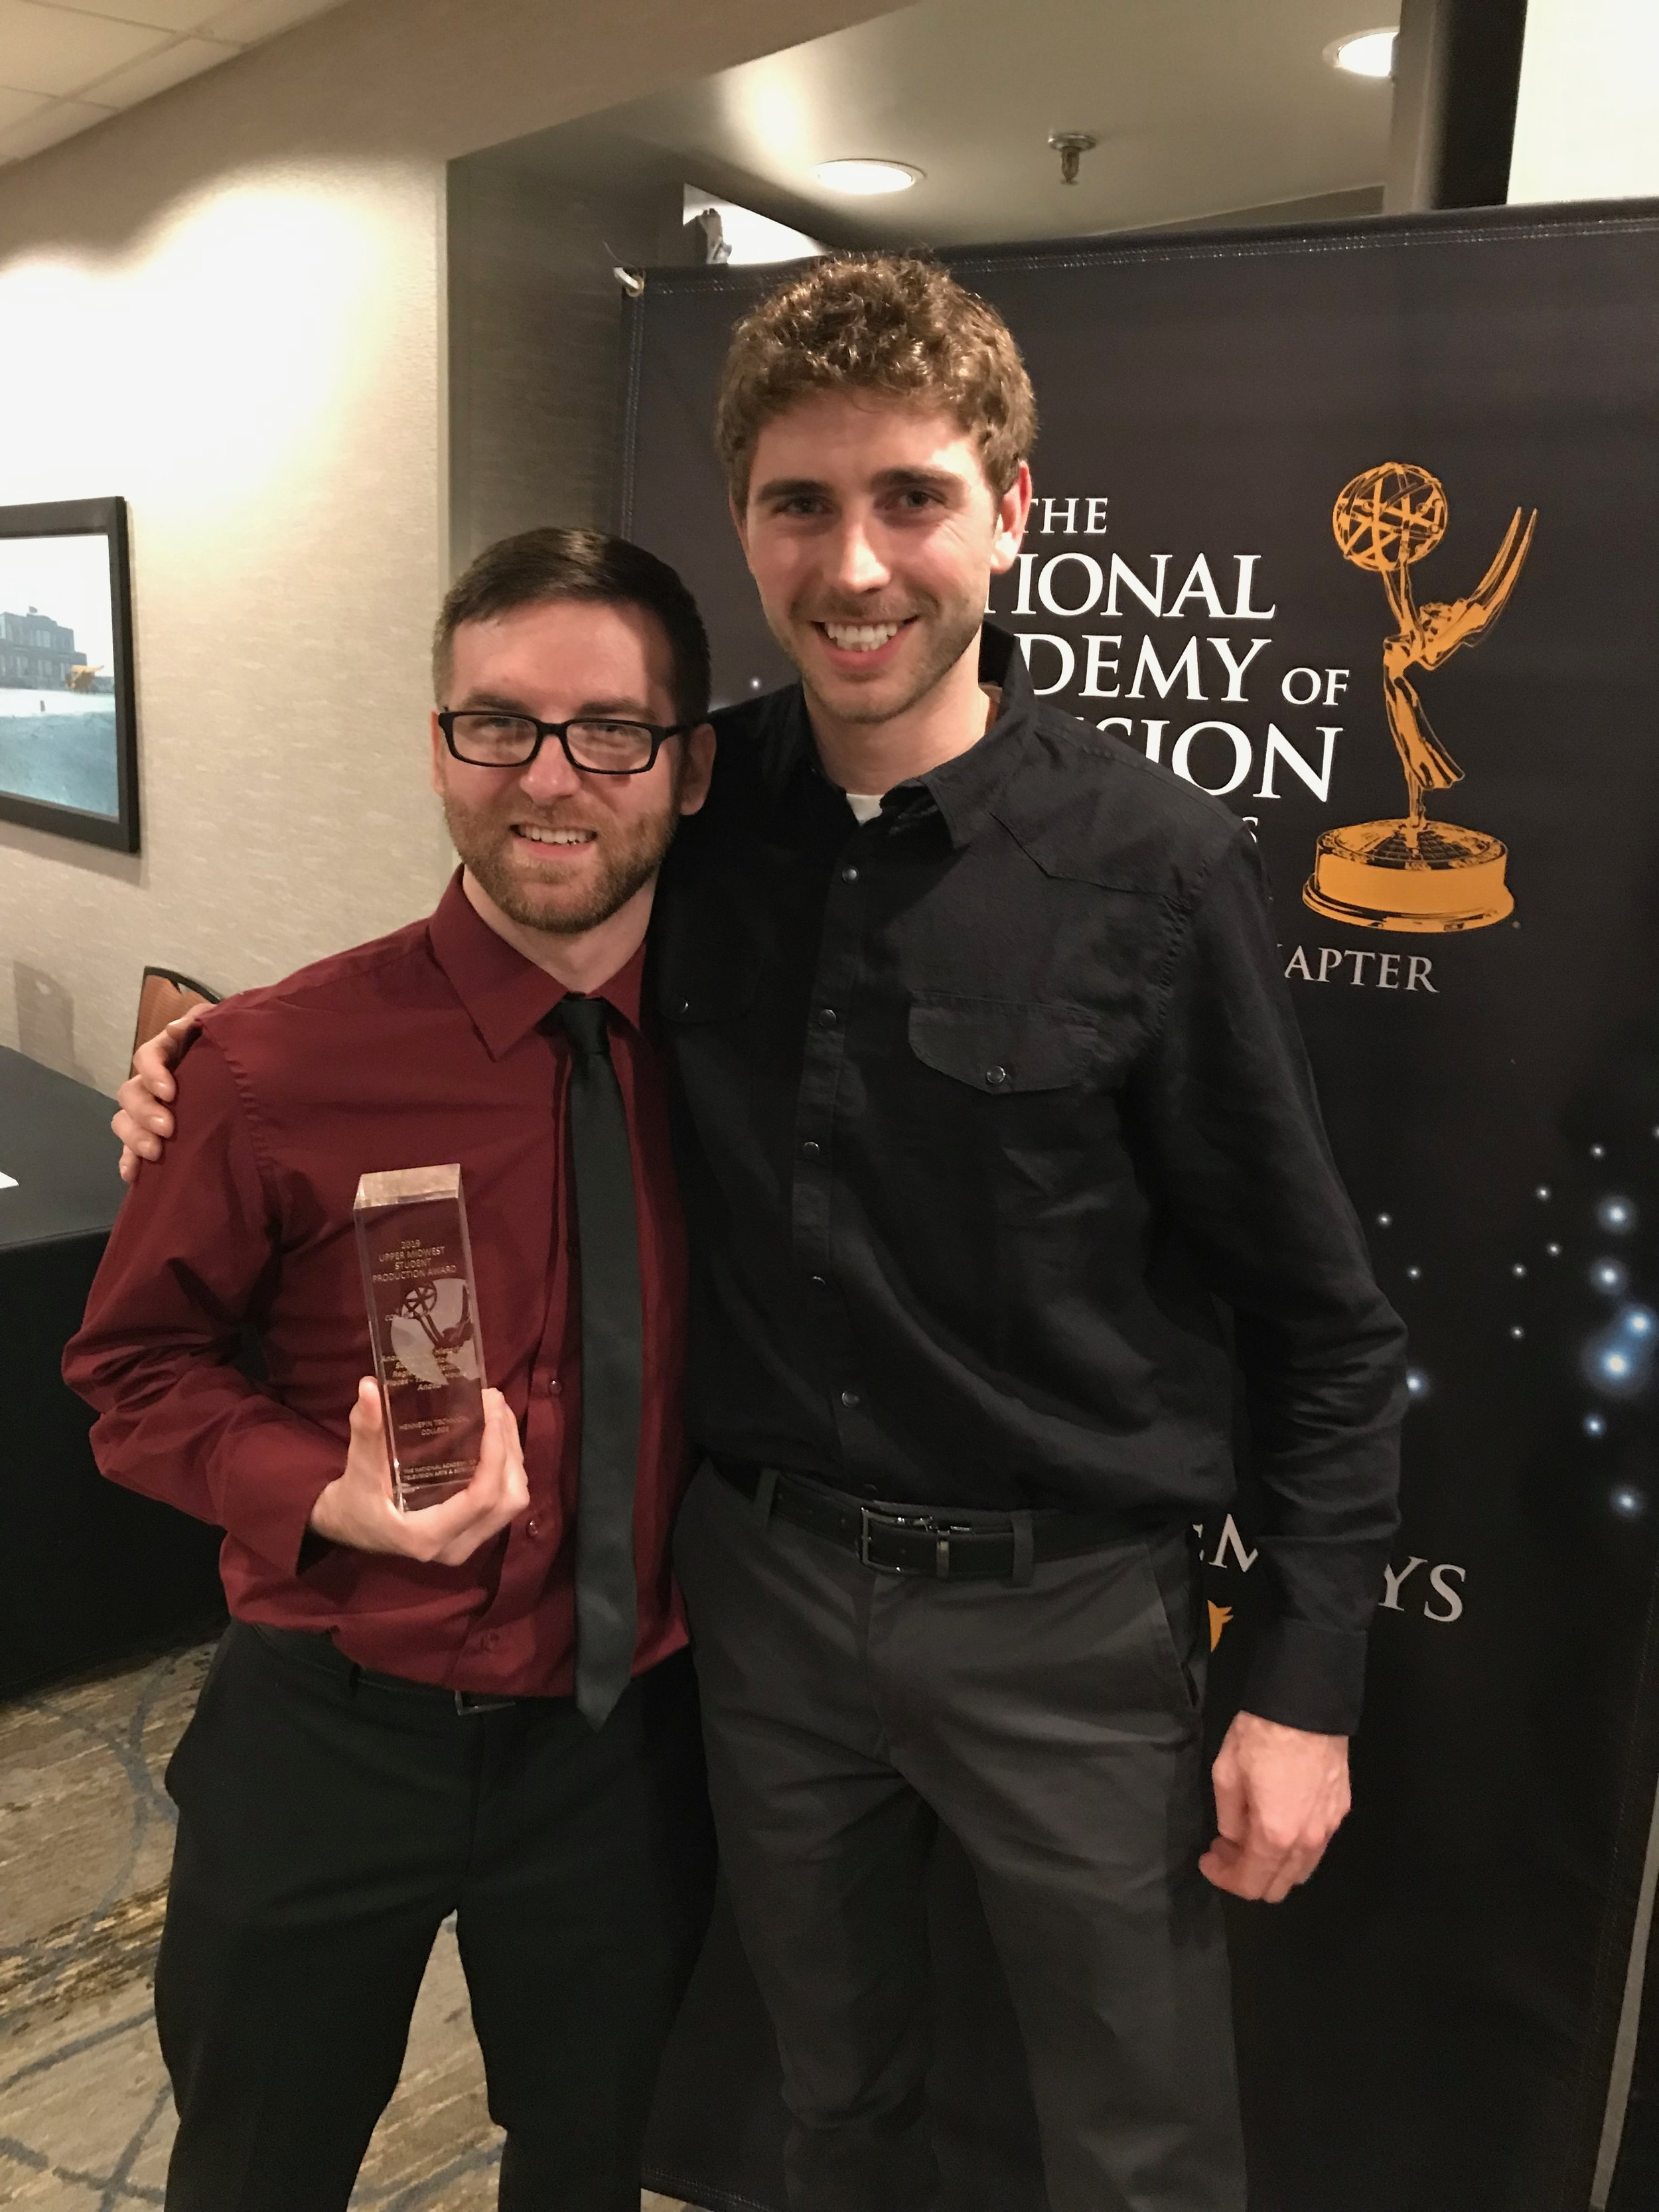 Justin Ramey, left, received a Crystal Pillar Award for a video about the Ticknor House Bed and Breakfast. Charles Ellingson, right, produced a video about the Carlos Avery Game Farm that was a Crystal Pillar runner-up. The videos were produced as part of a collaboration between Hennepin Technical College and the Anoka County Historical Society. (Photo courtesy of the Anoka County Historical Society)